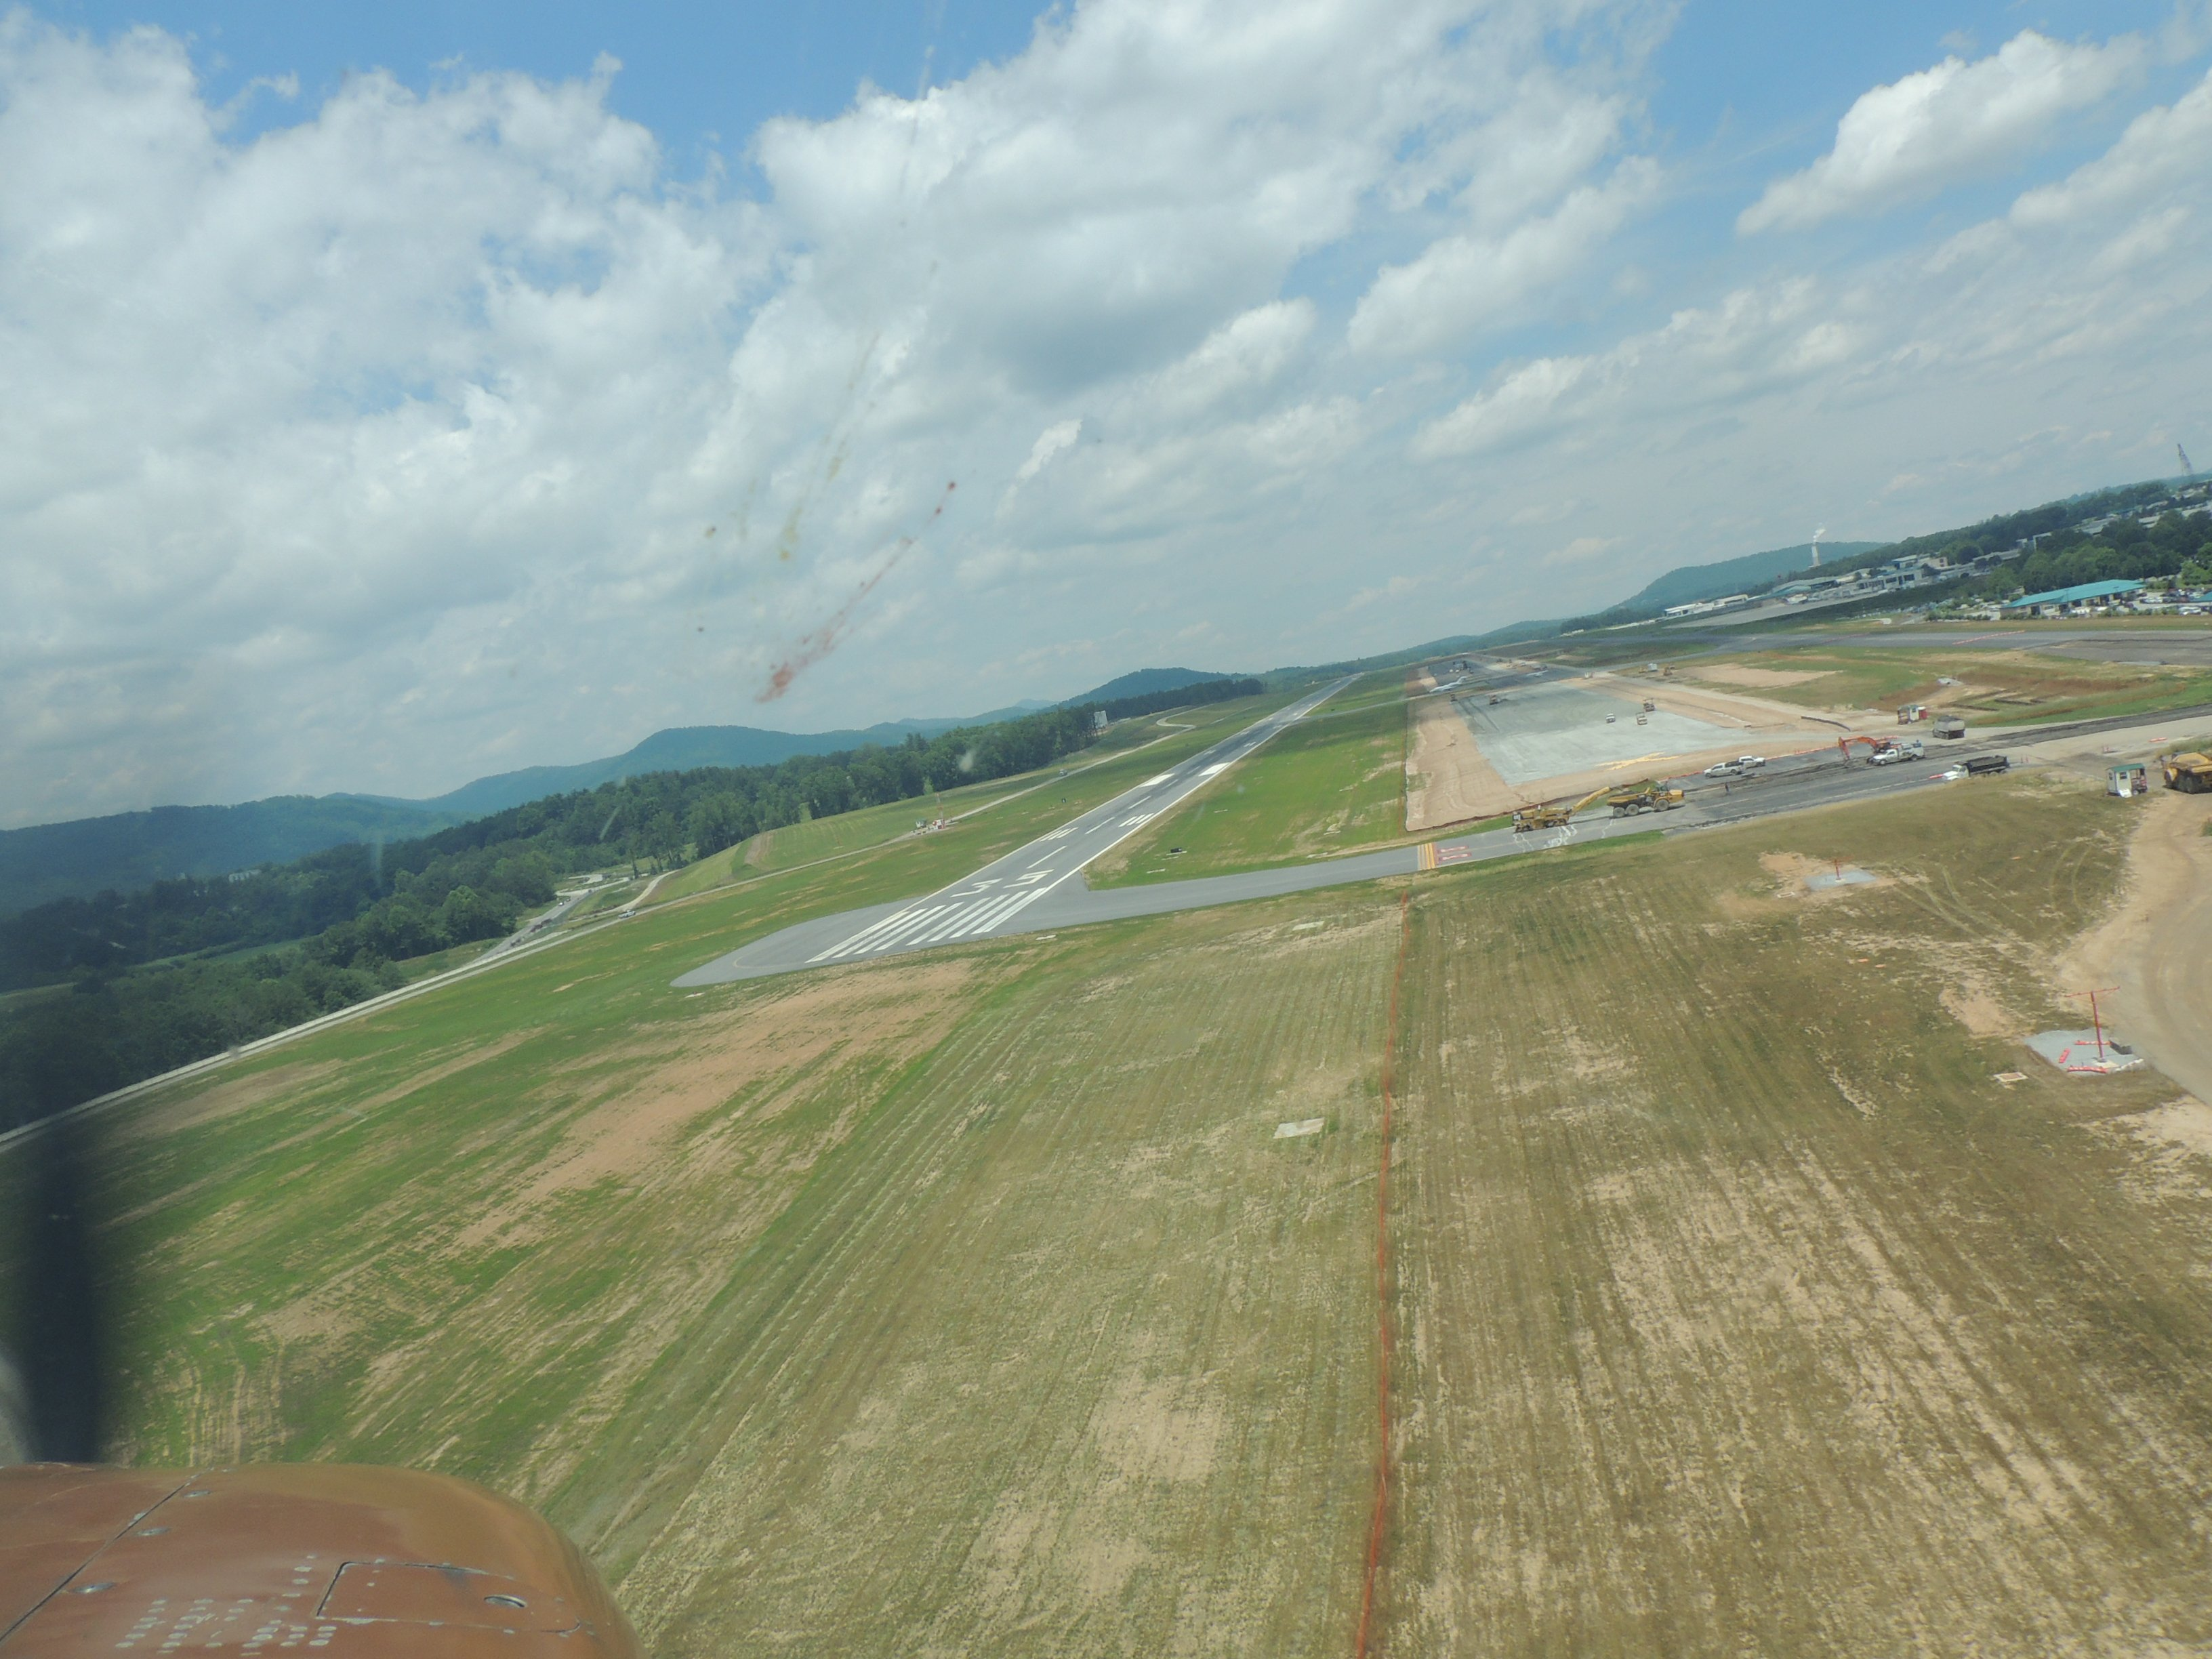 On short final at Asheville NC